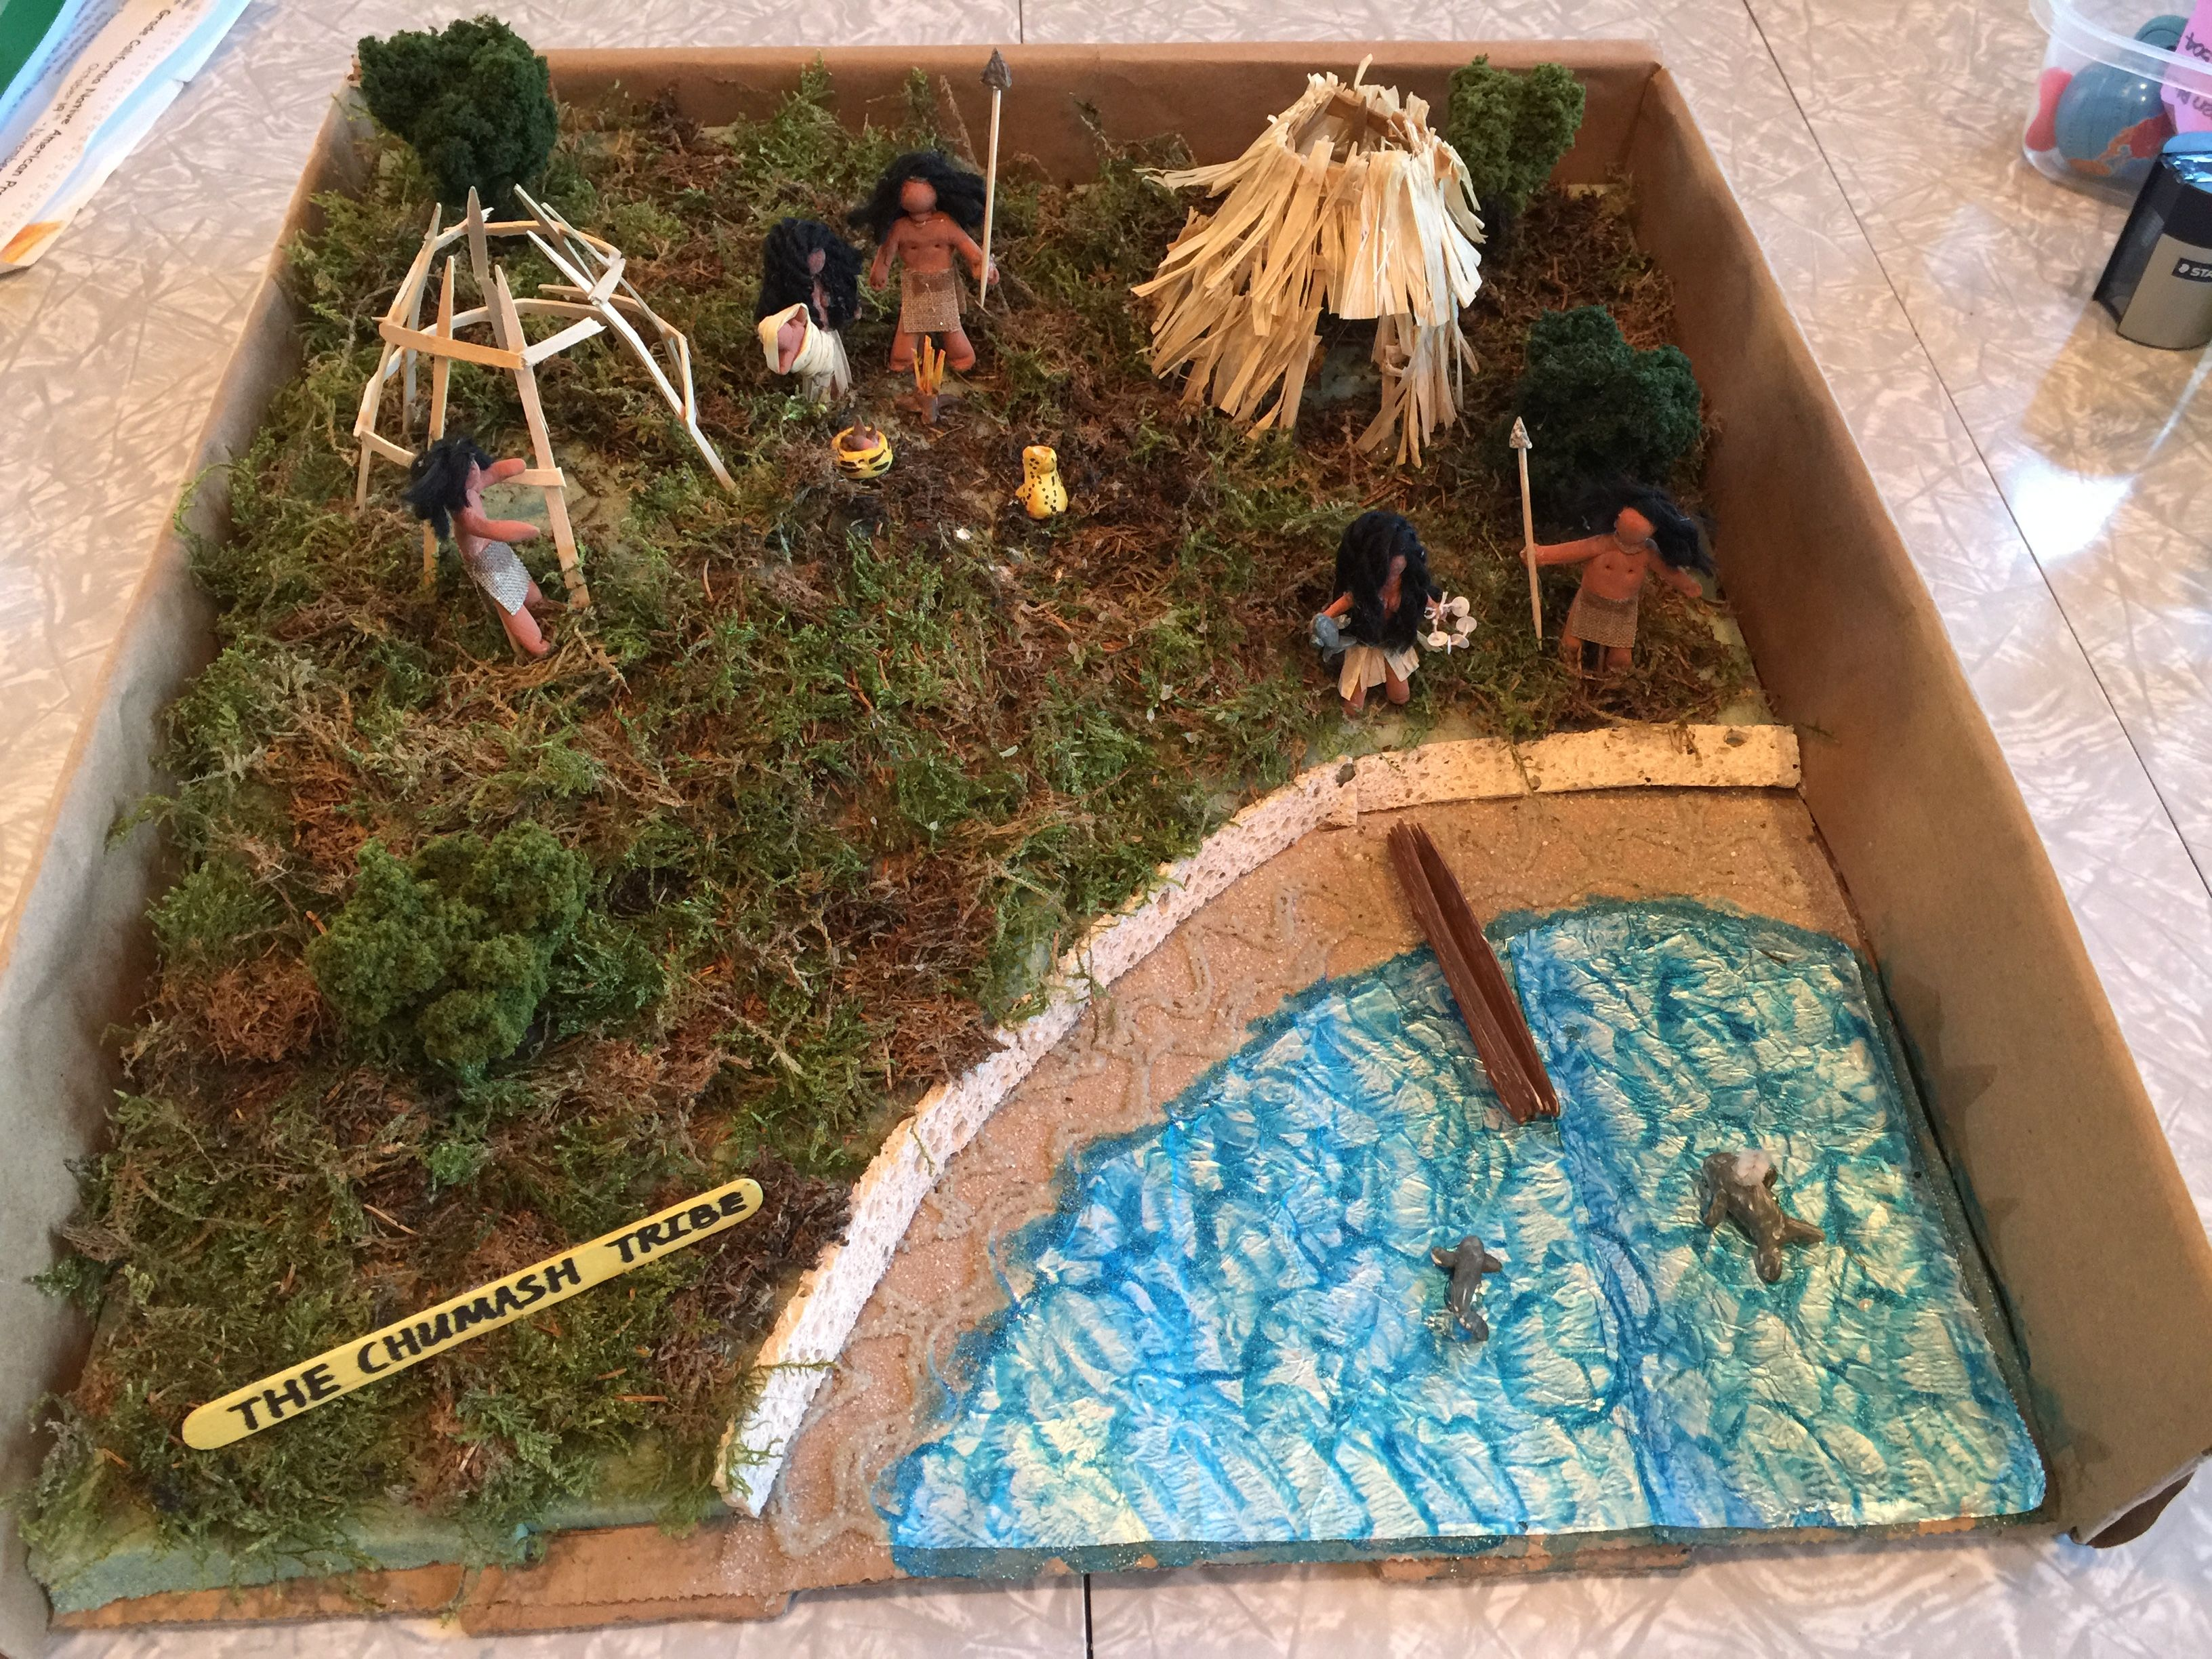 Indian Chumash Tribe Project